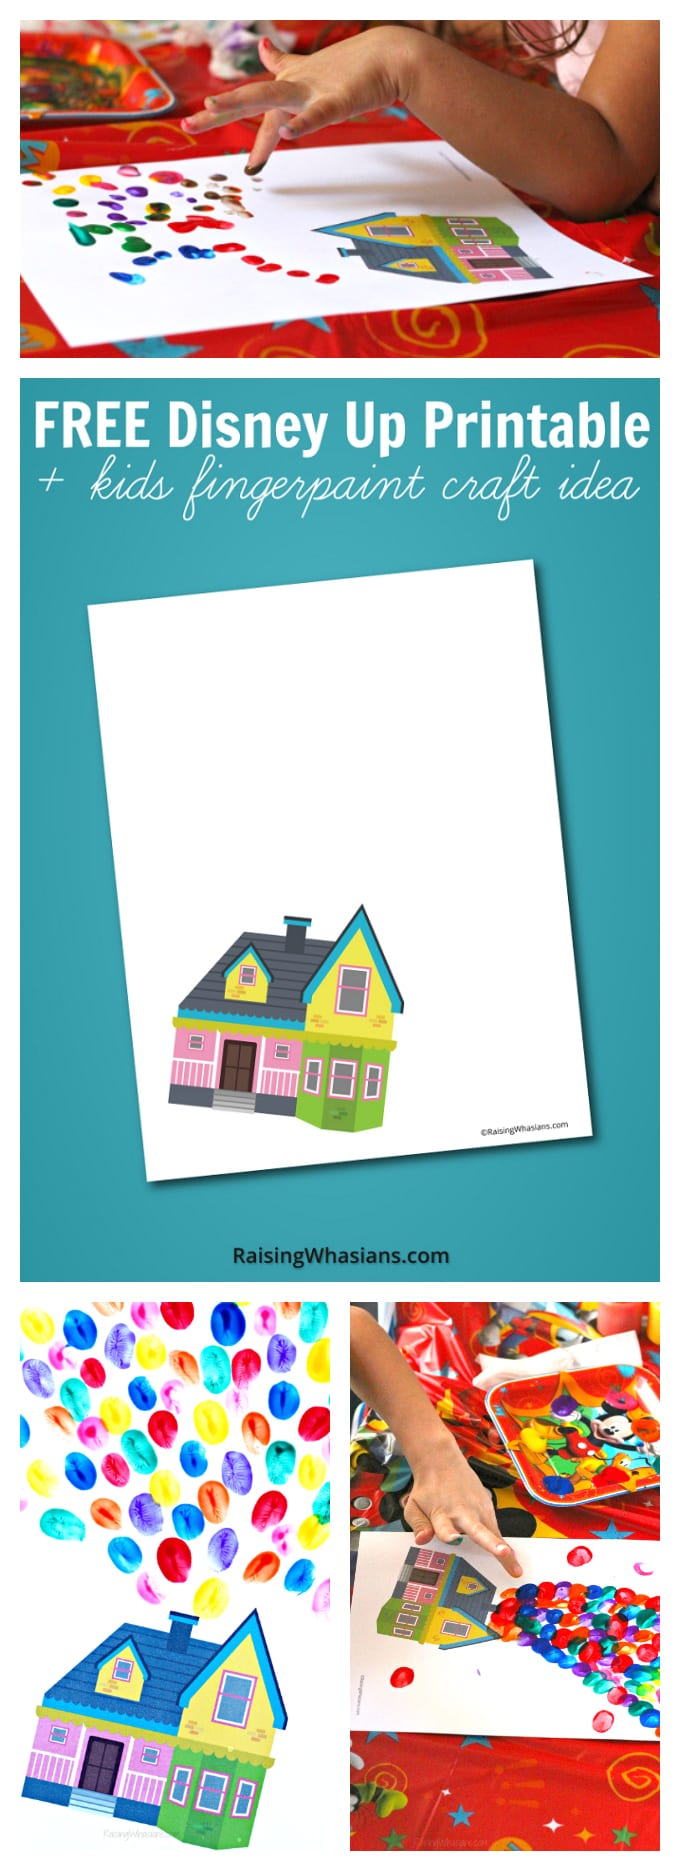 photograph regarding House From Up Printable known as Totally free Disney Up Printable + Young children Craft Strategy - Escalating Whasians